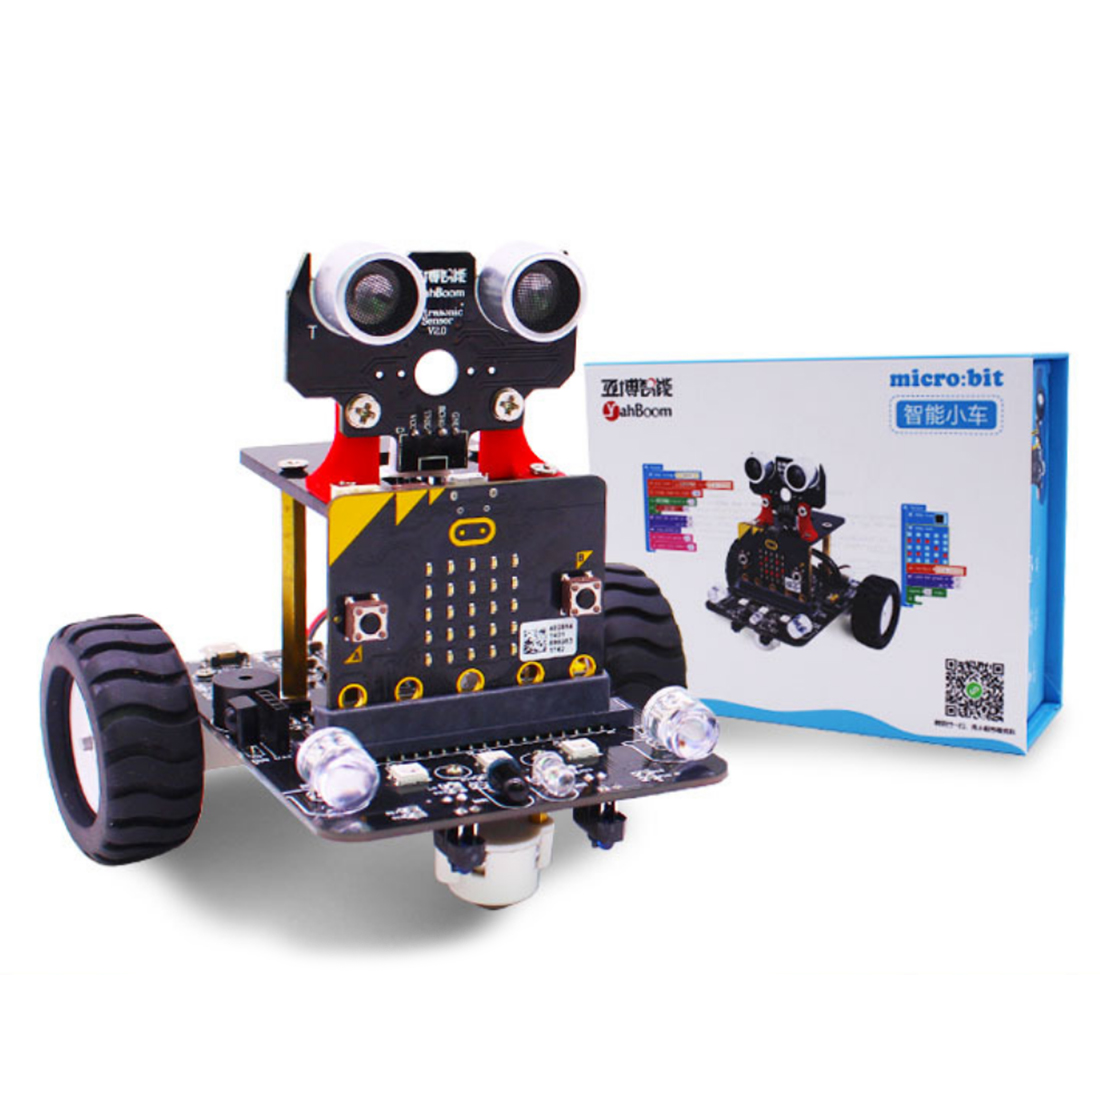 Graphical Programmable Robot Car with Bluetooth IR and Tracking Module Stem Steam Robot Car Toy for Micro:bit BBC 1